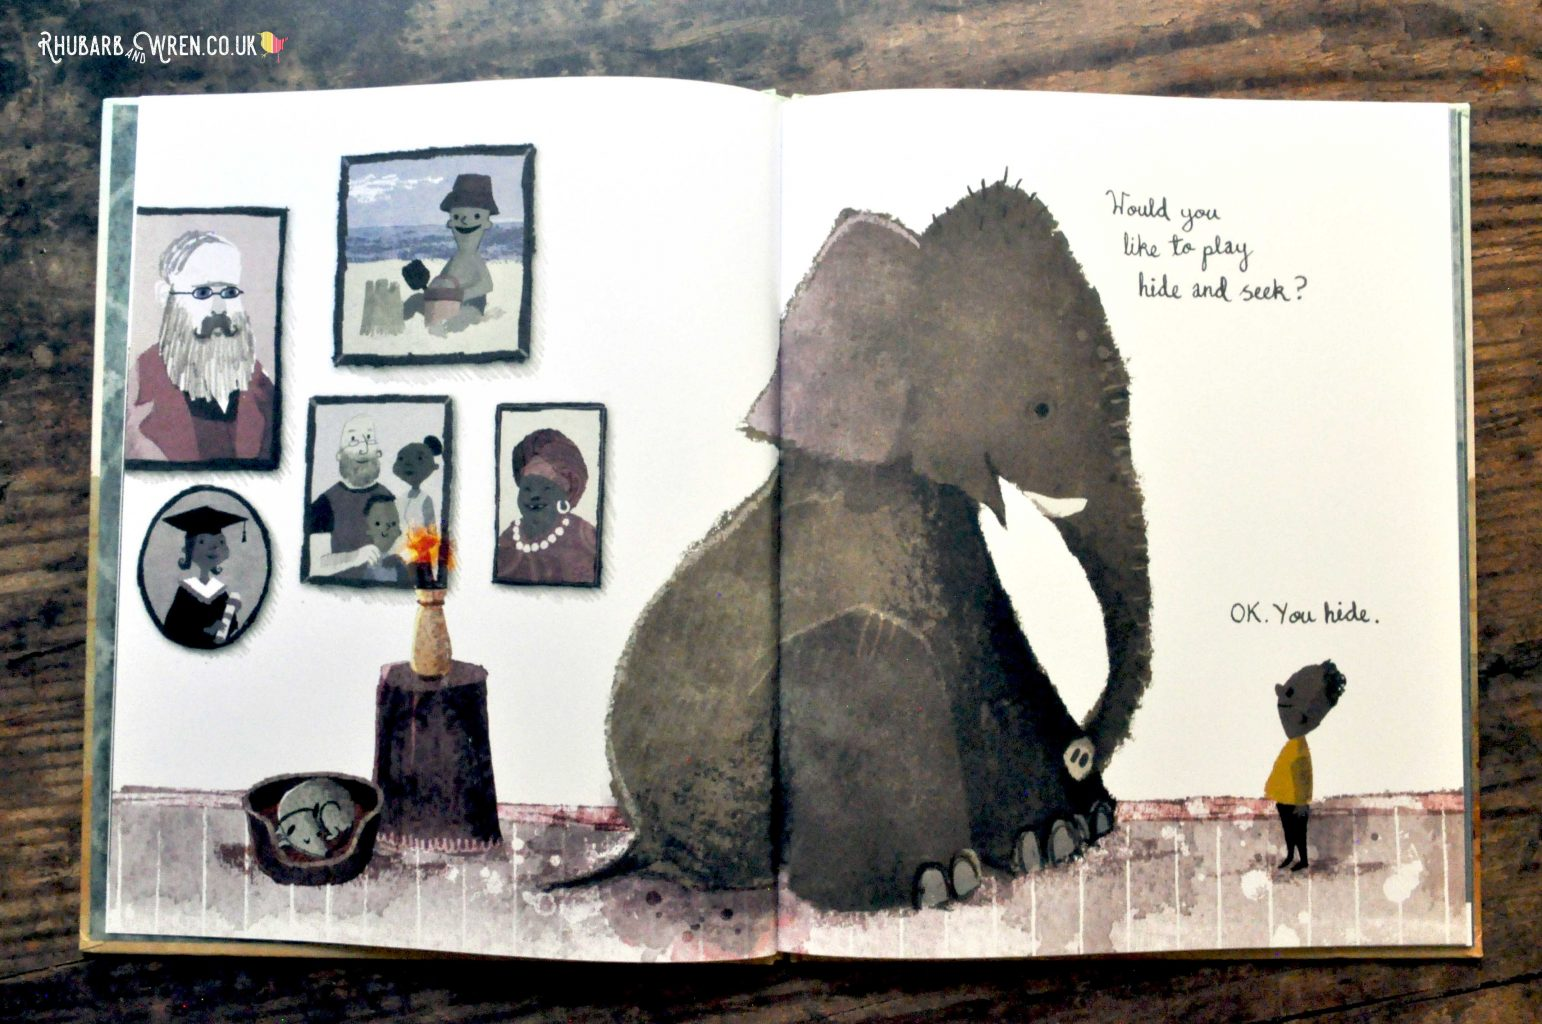 A page from 'Have You Seen Elephant' by David Barrow, where an Elephant is asking a boy to play hide and seek.